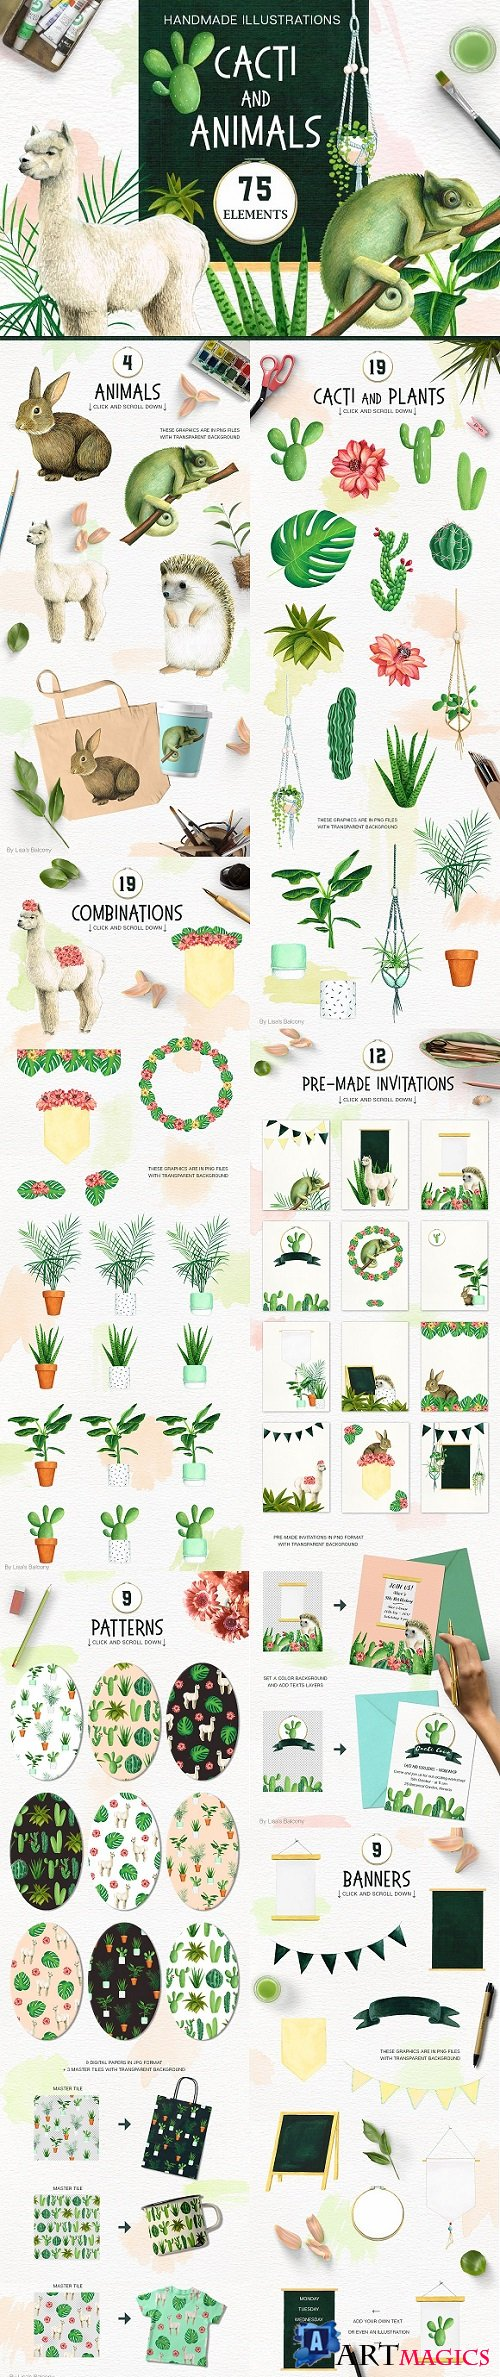 Cacti and Animals - Design Kit 1857539